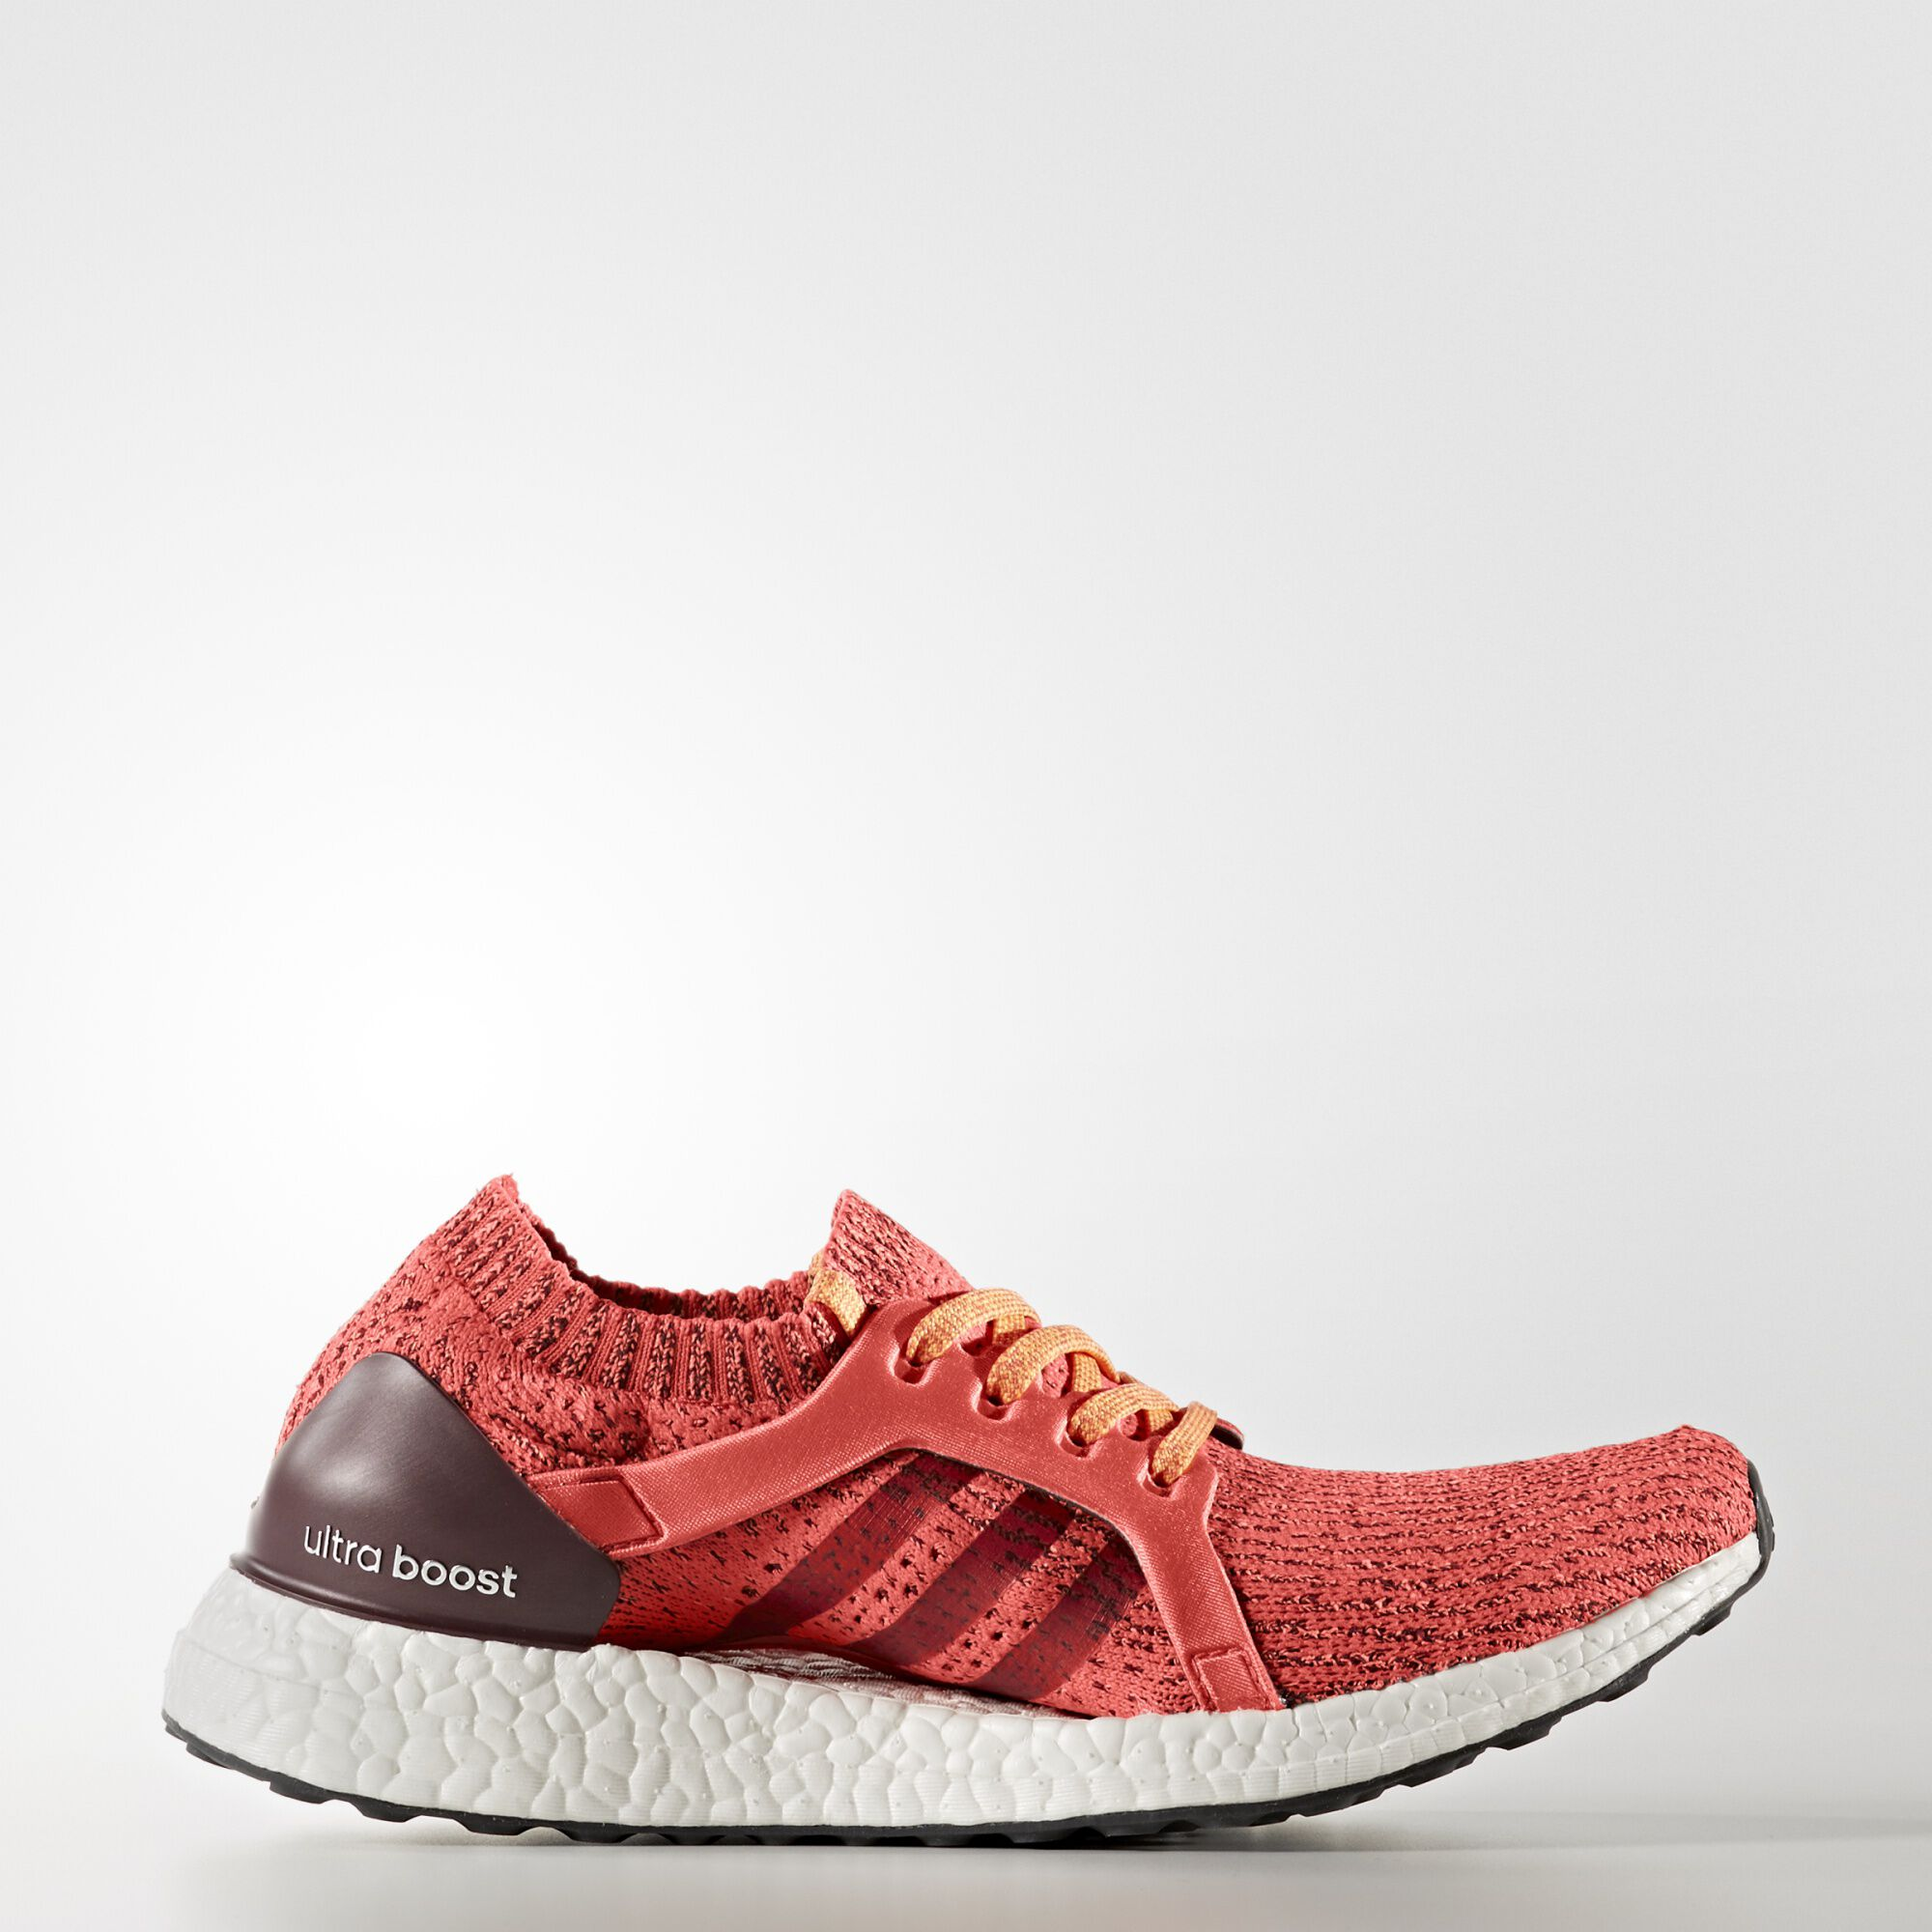 Adidas Boost Running Shoes Womens